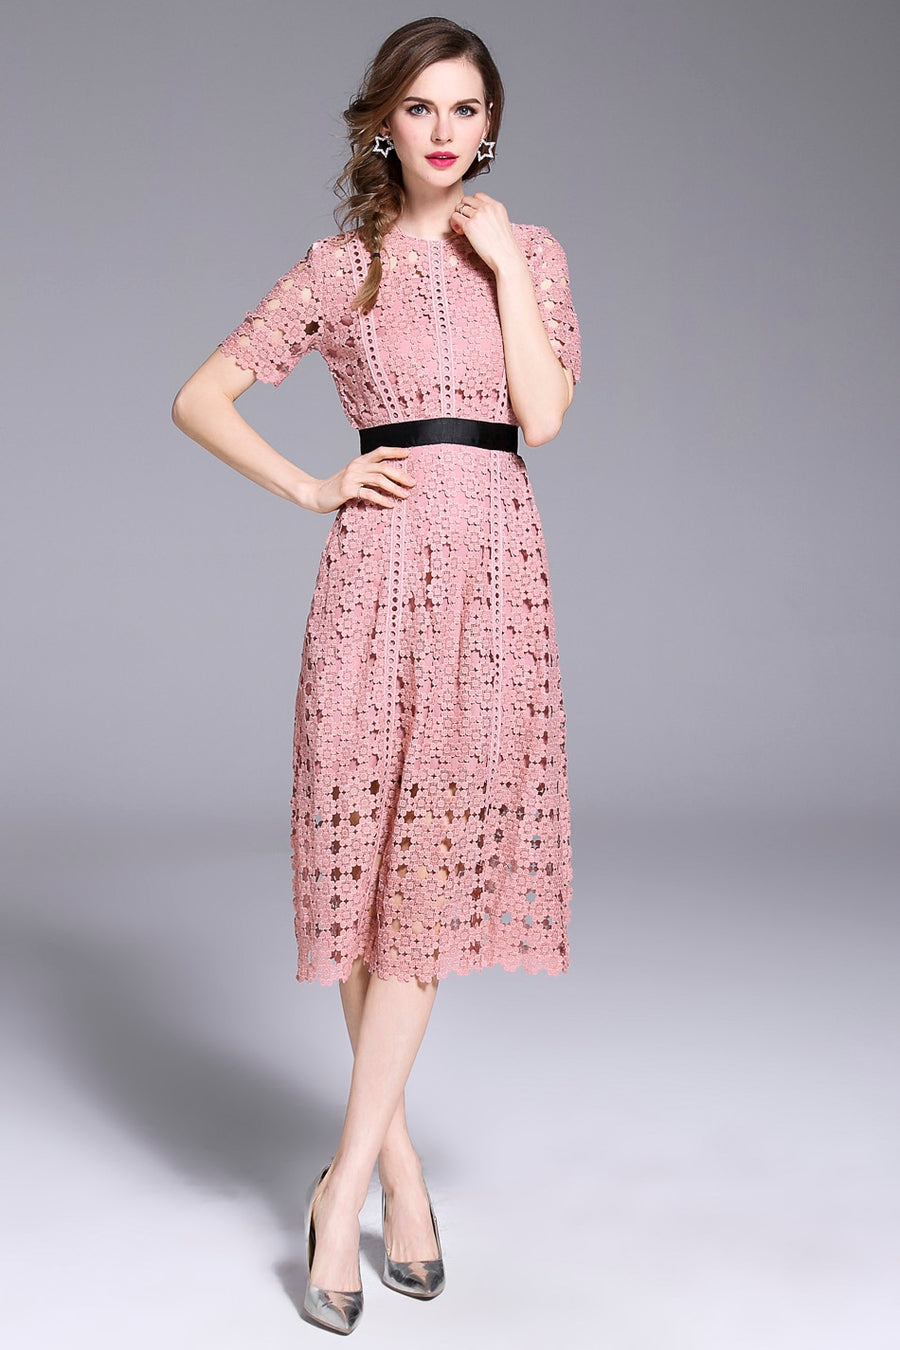 Pink Short Sleeve Lace Hollow Out Casual Midi Dress